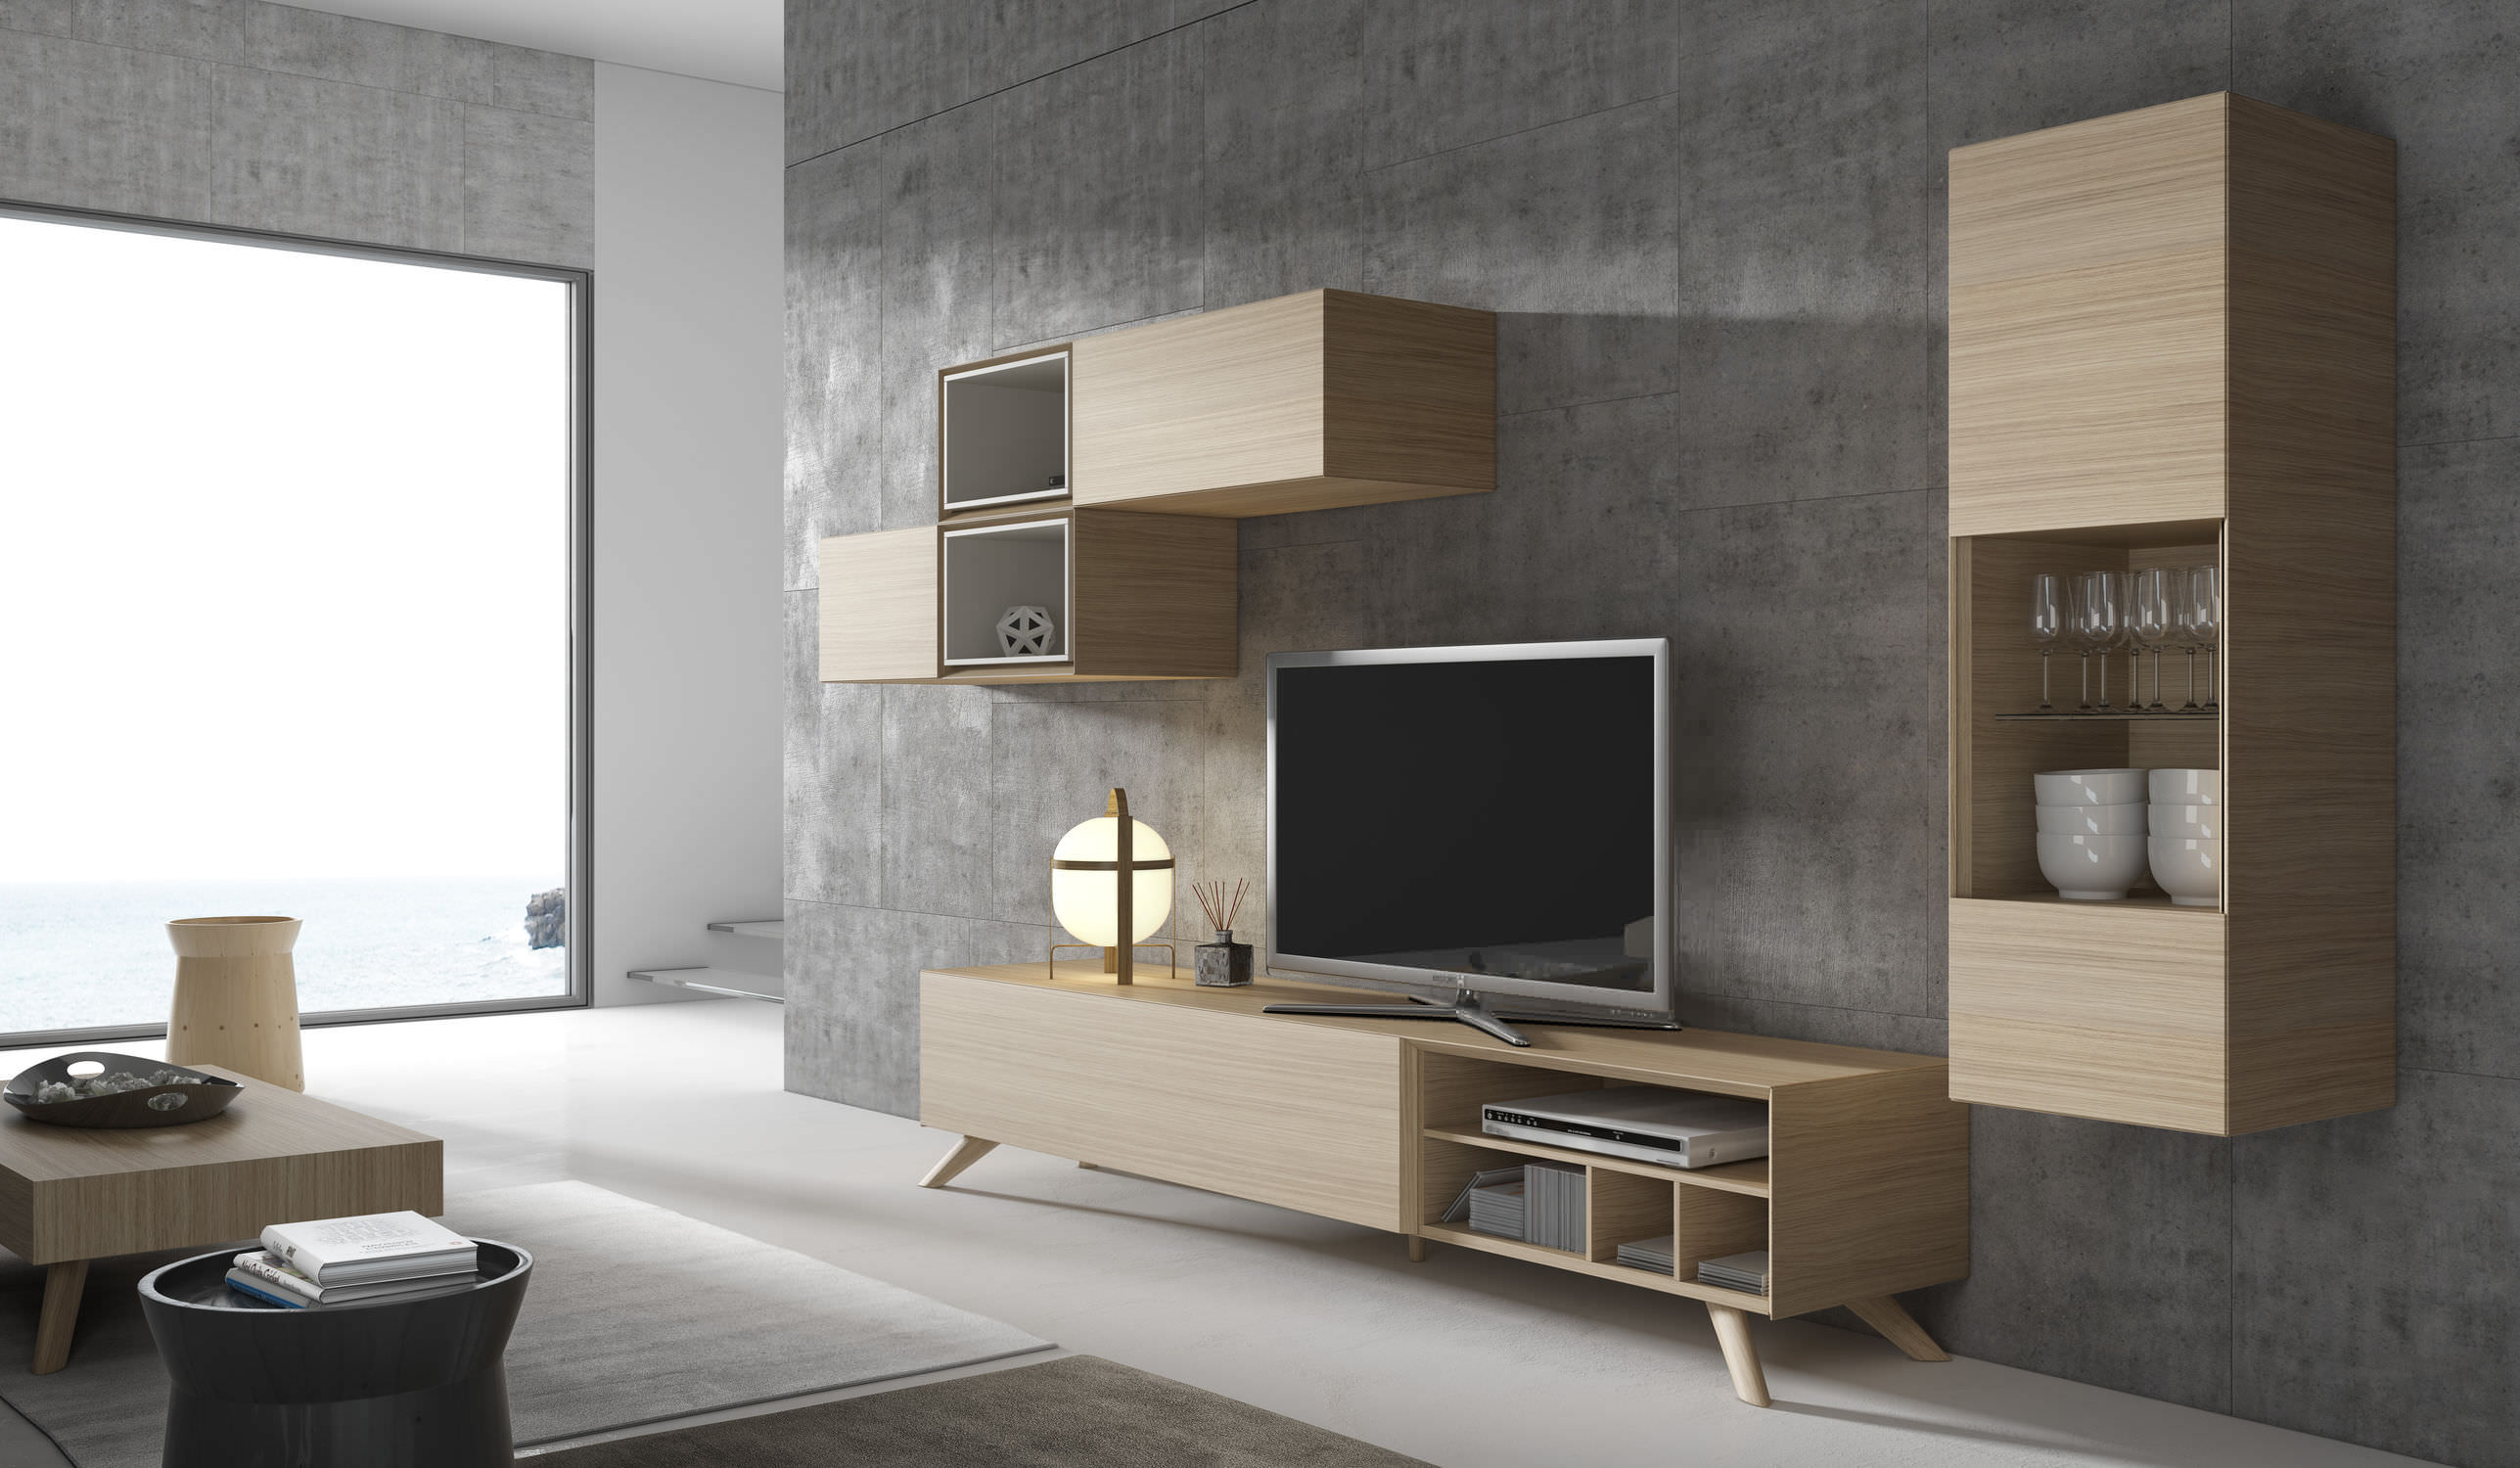 Meuble tv contemporain design id es de d coration for Meuble tv contemporain design